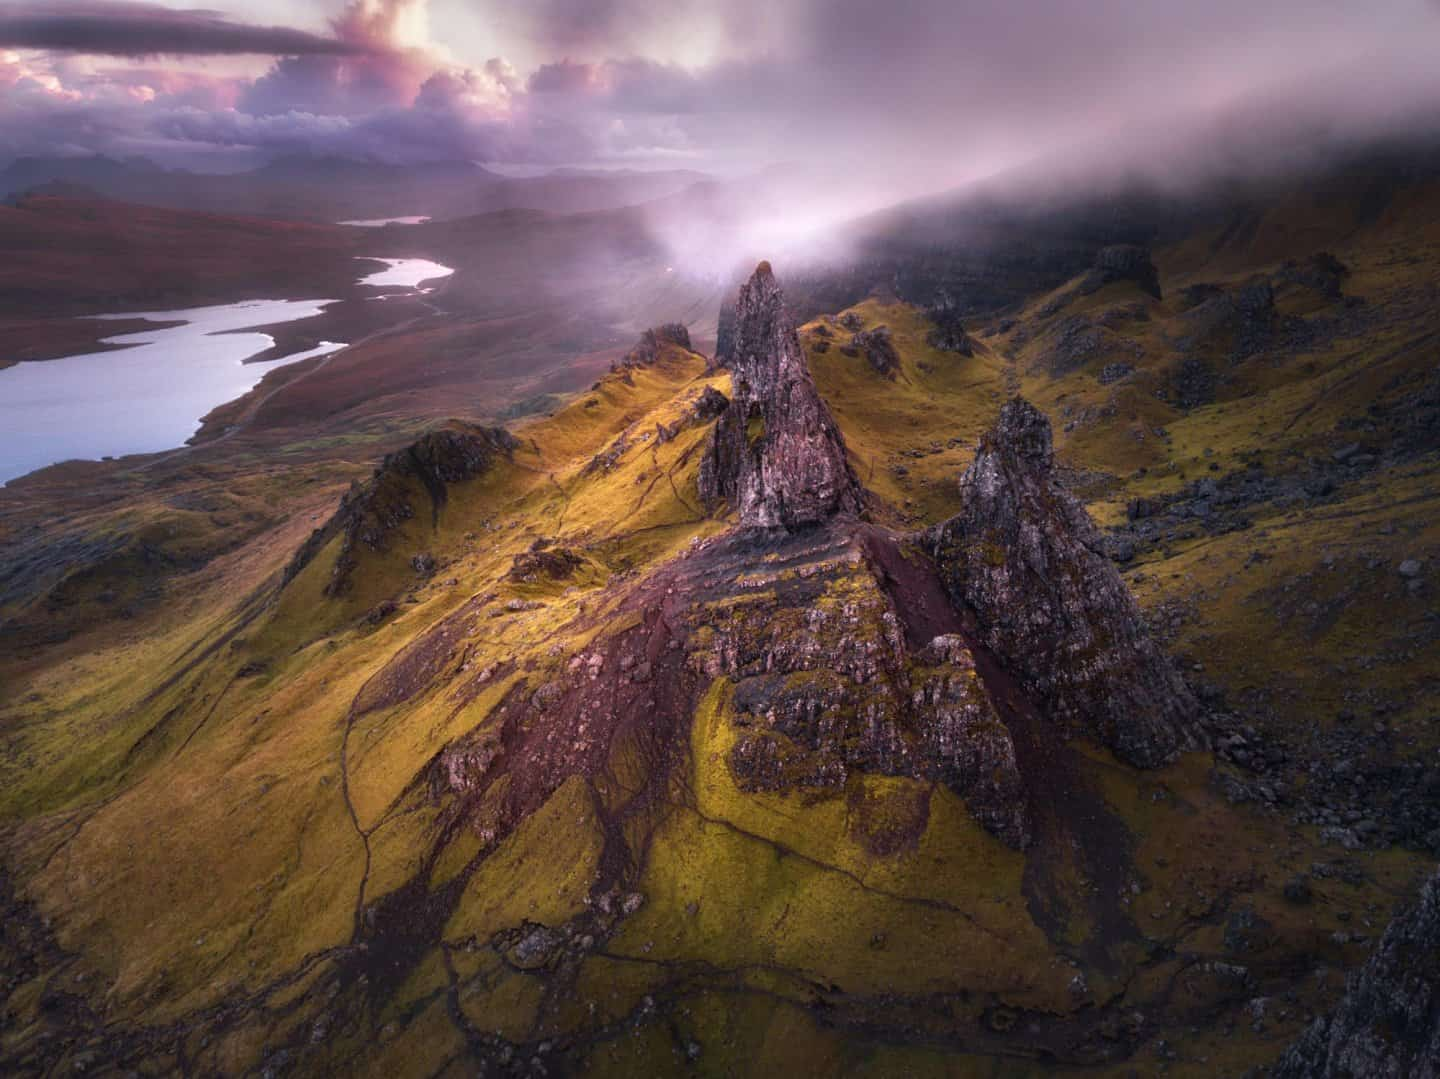 Allow 3 of 10 days in Scotland for sunrises on the Isle of Skye.